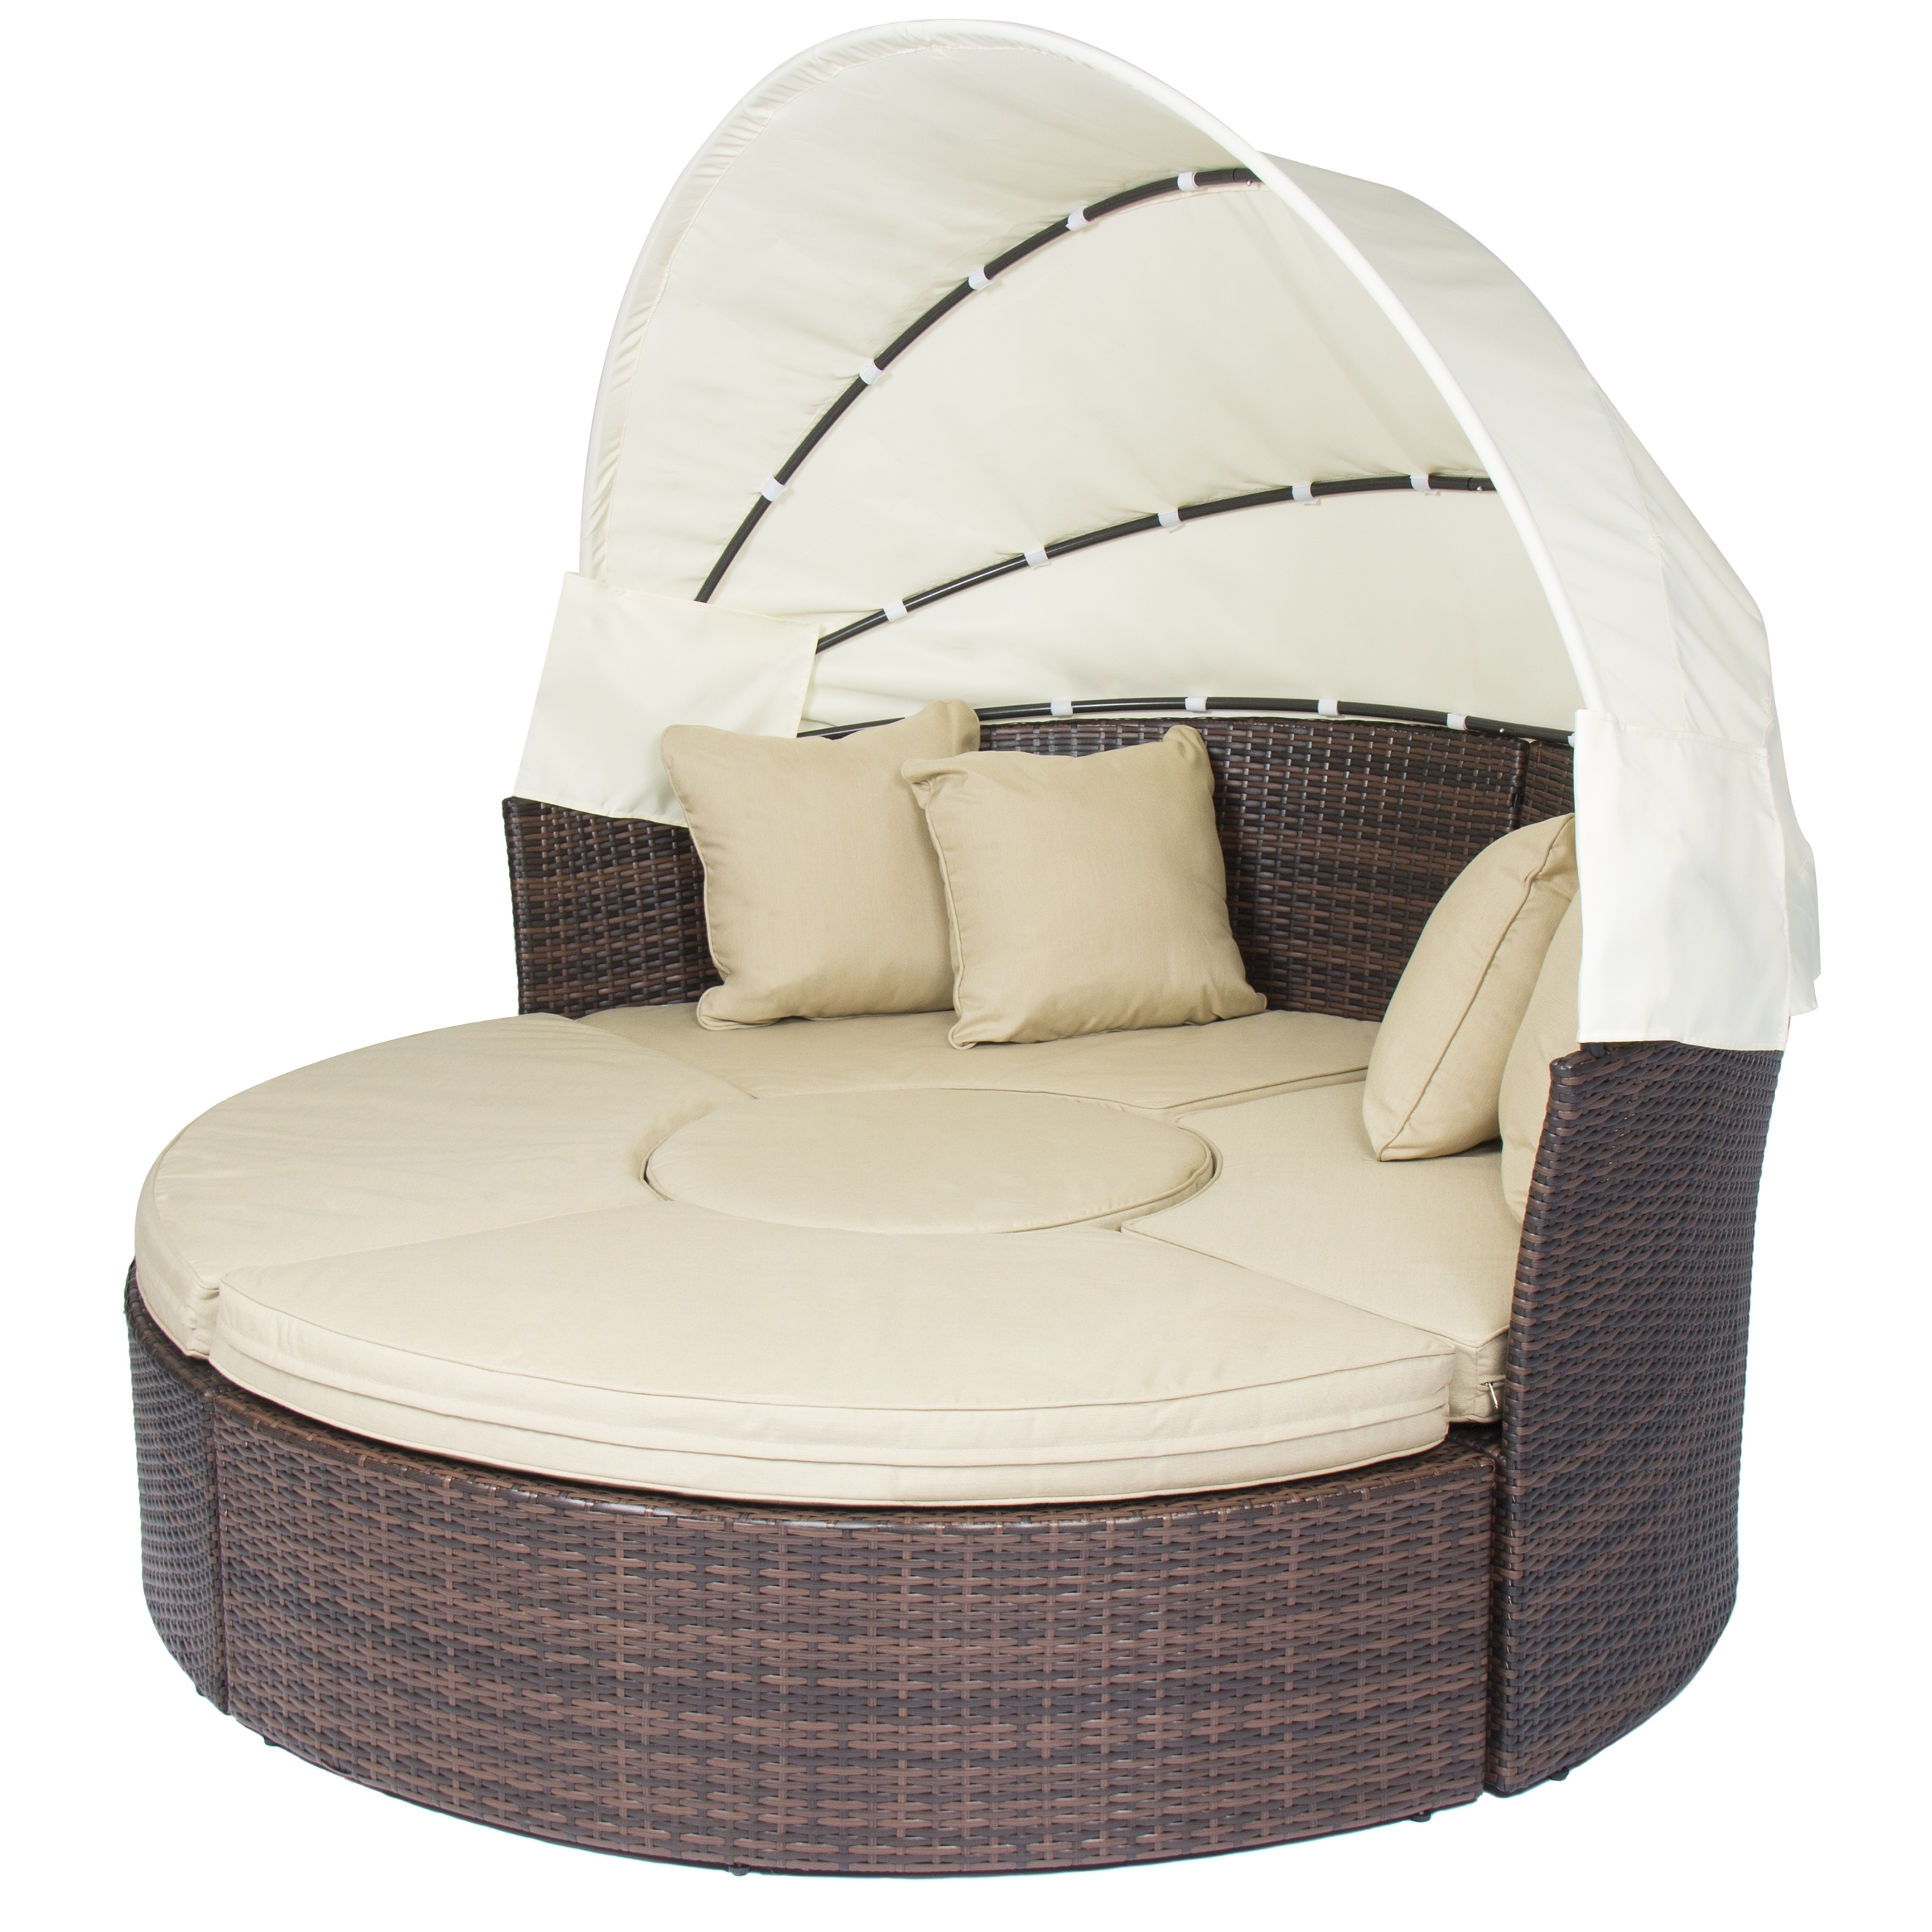 Preferred Outdoor Patio Sofa Furniture Round Retractable Canopy Daybed Brown With Outdoor Sofas With Canopy (View 16 of 20)